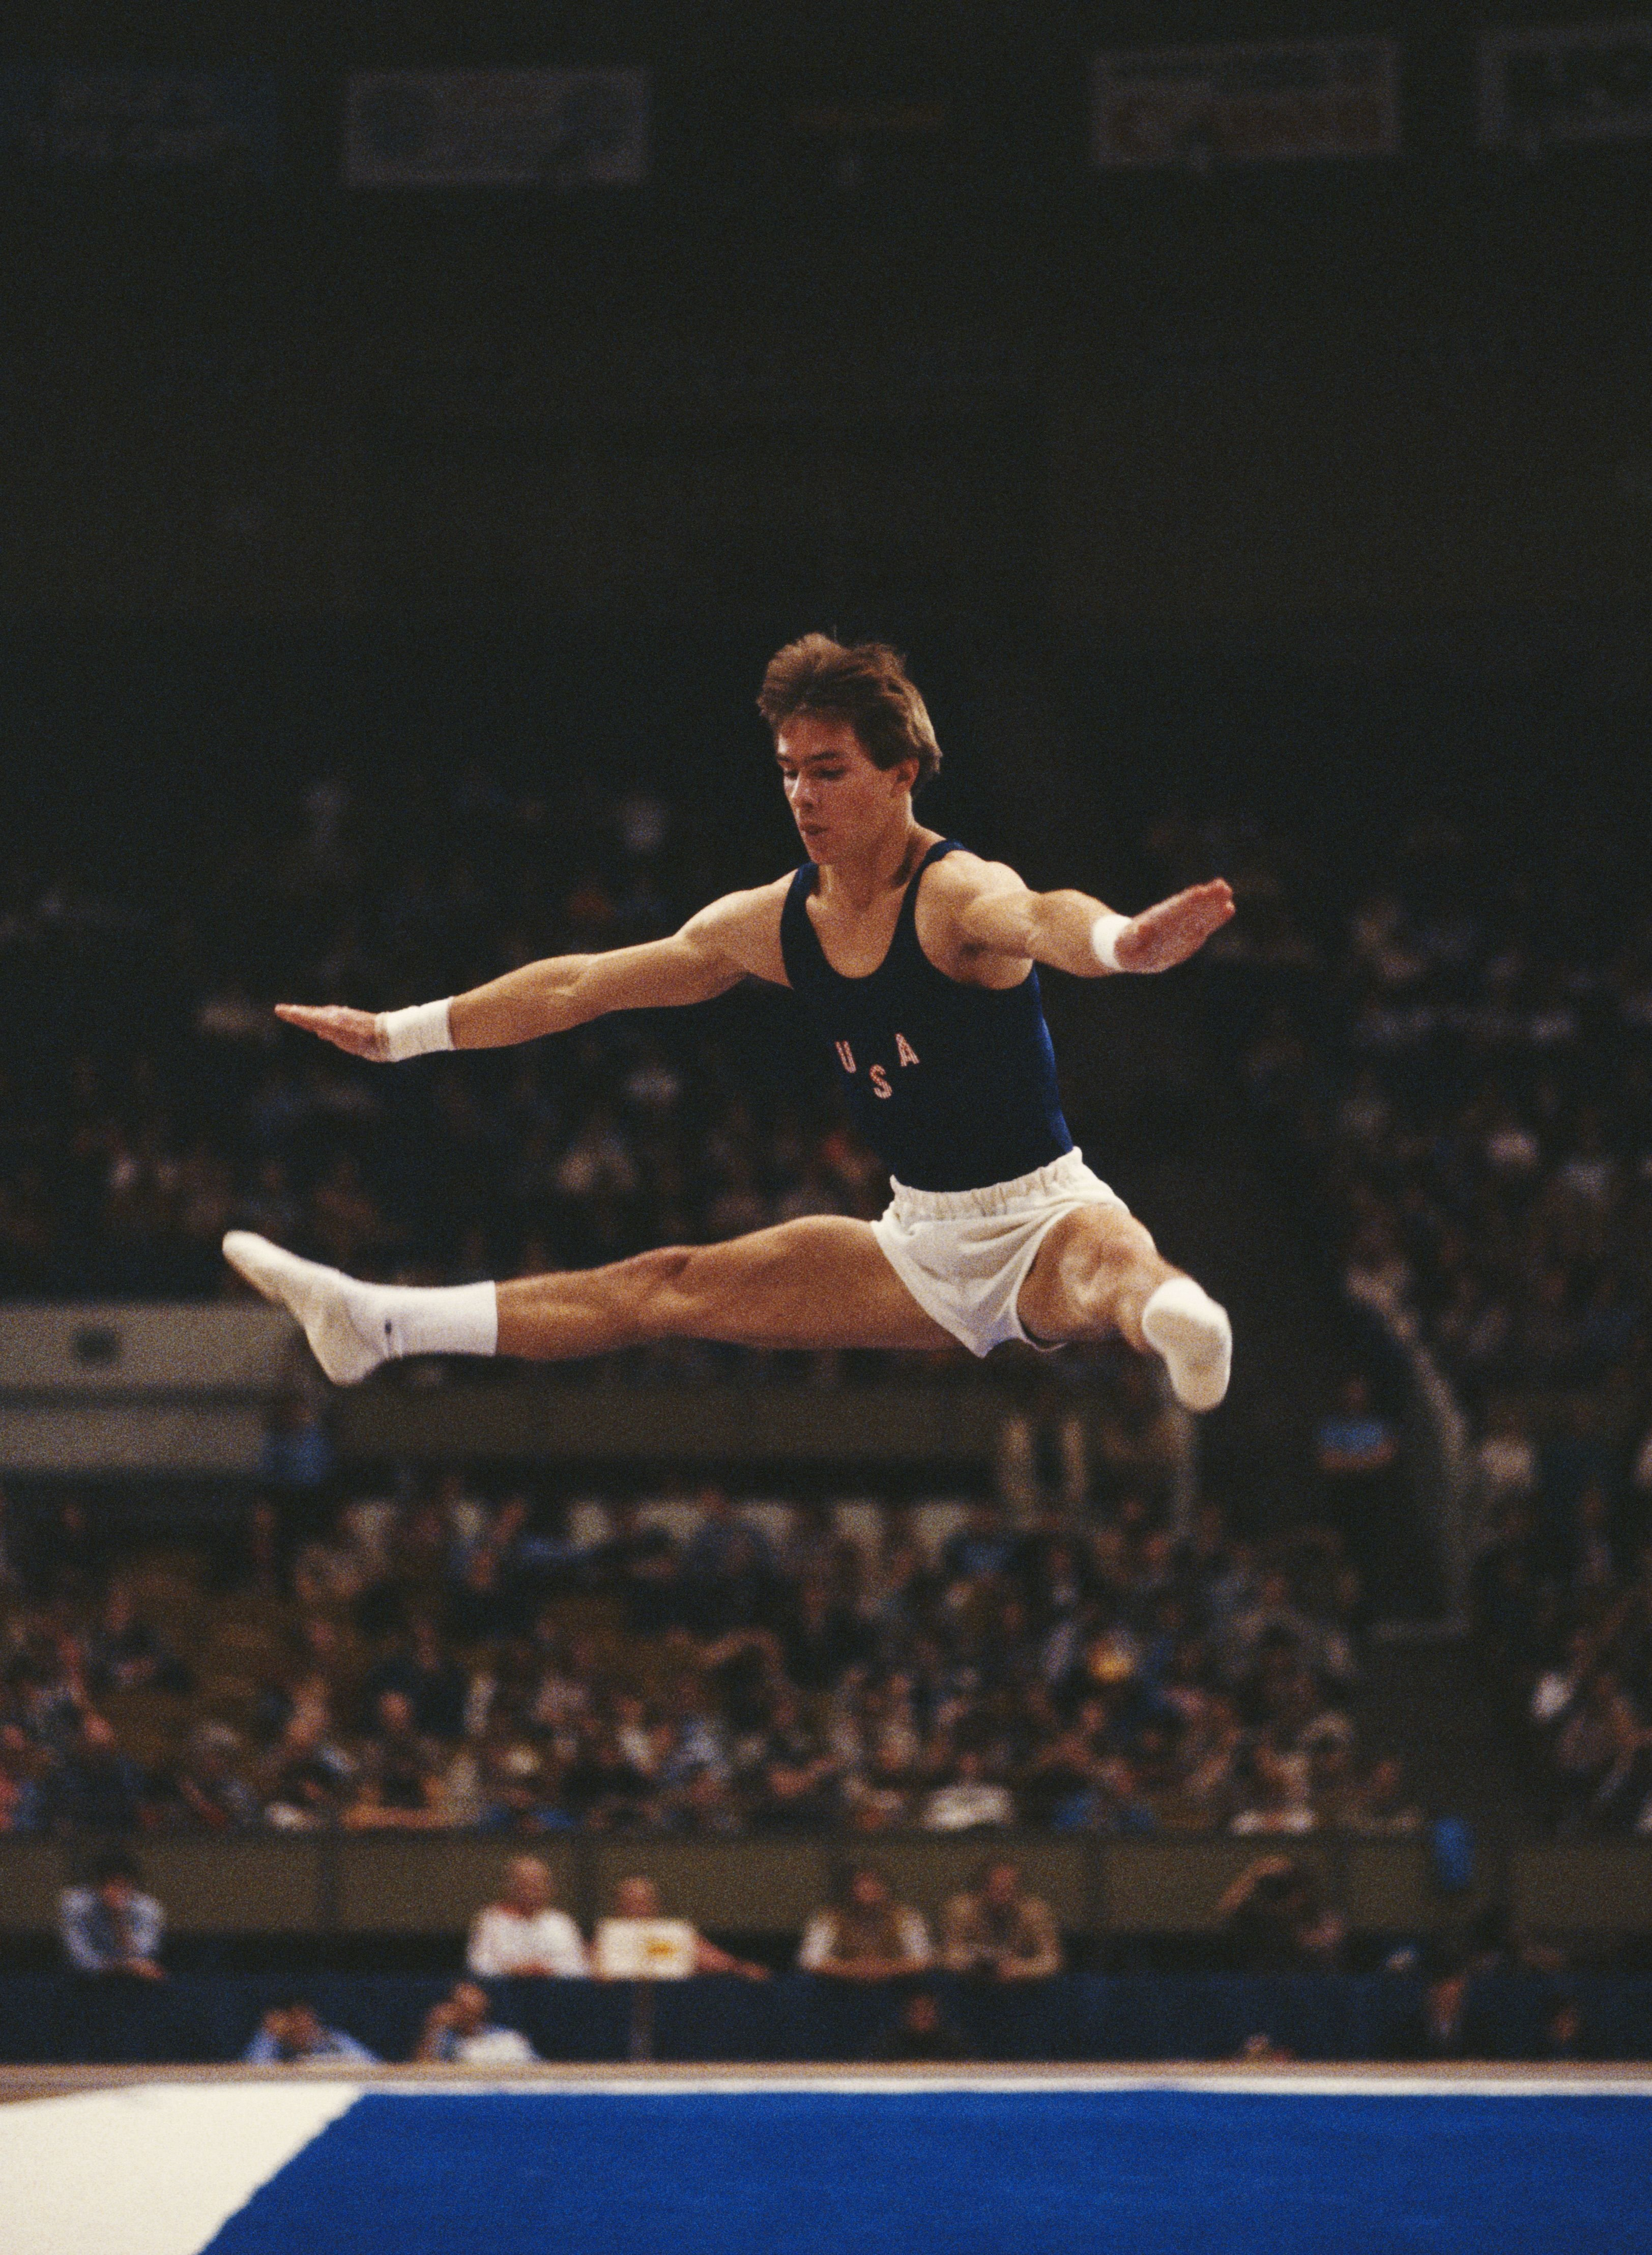 Kurt Thomas of the United States performing during the Men's All-around event during the 1979 World Artistic Gymnastics Championships in Fort Worth, Texas, United States | Photo: Tony Duffy/Getty Images